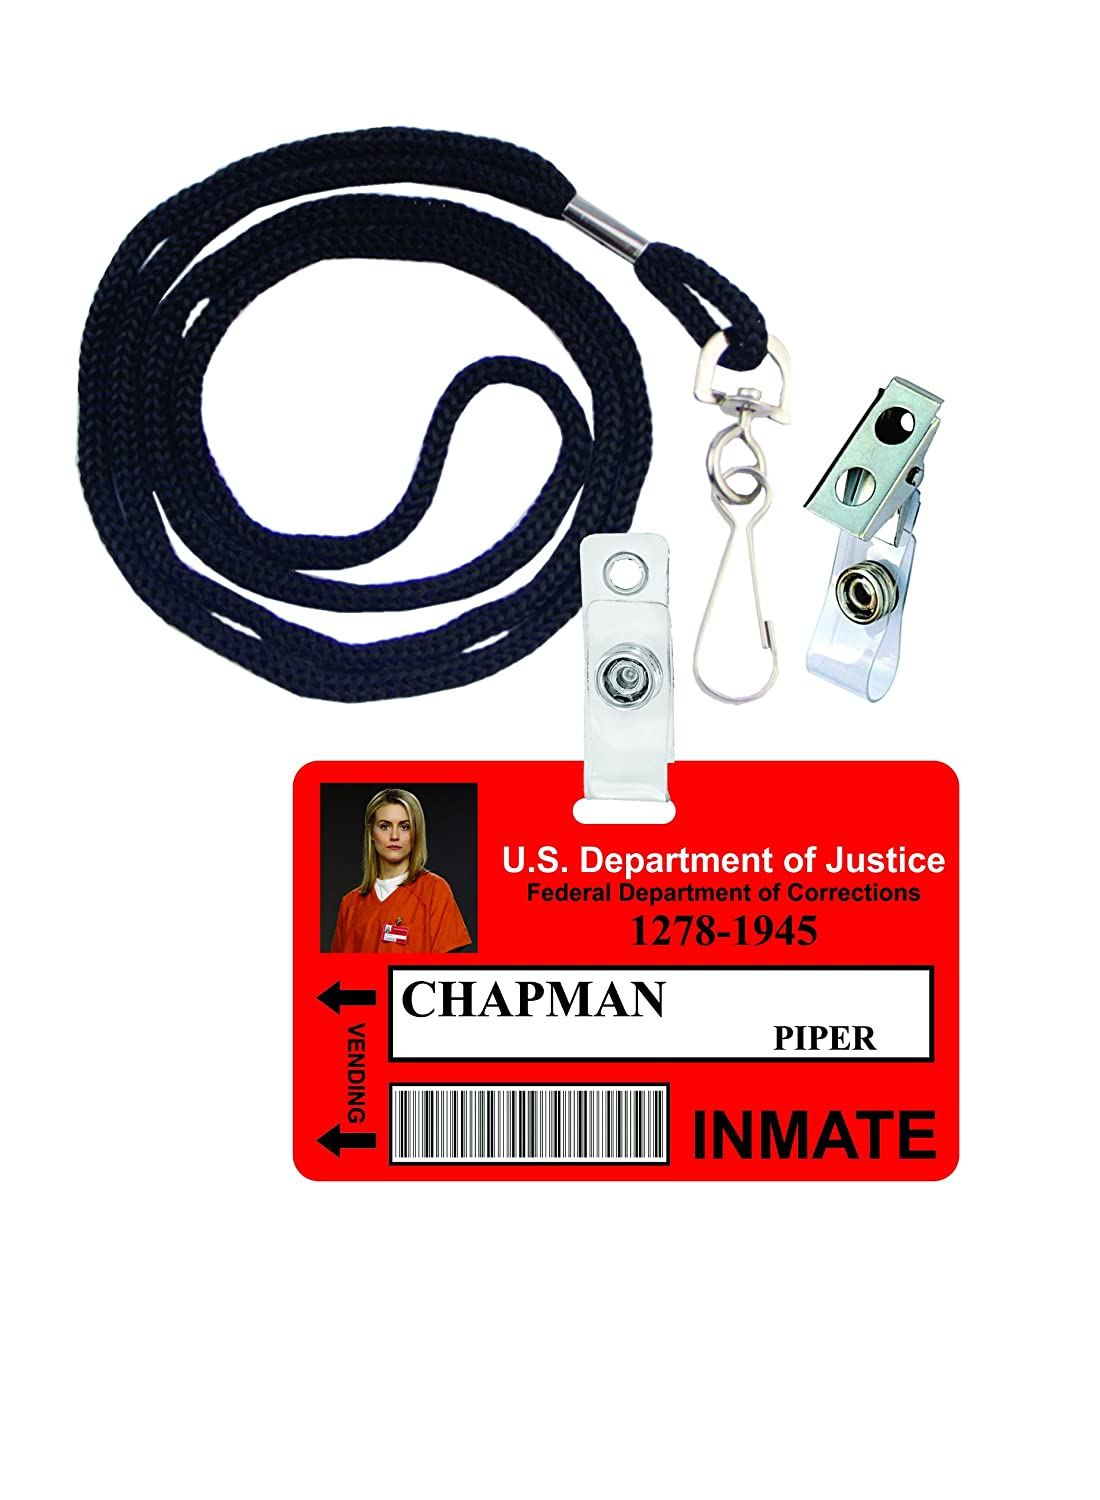 image about Dwight Schrute Id Badge Printable referred to as : Piper Chapman OITNB Novelty Identity Badge Motion picture Prop